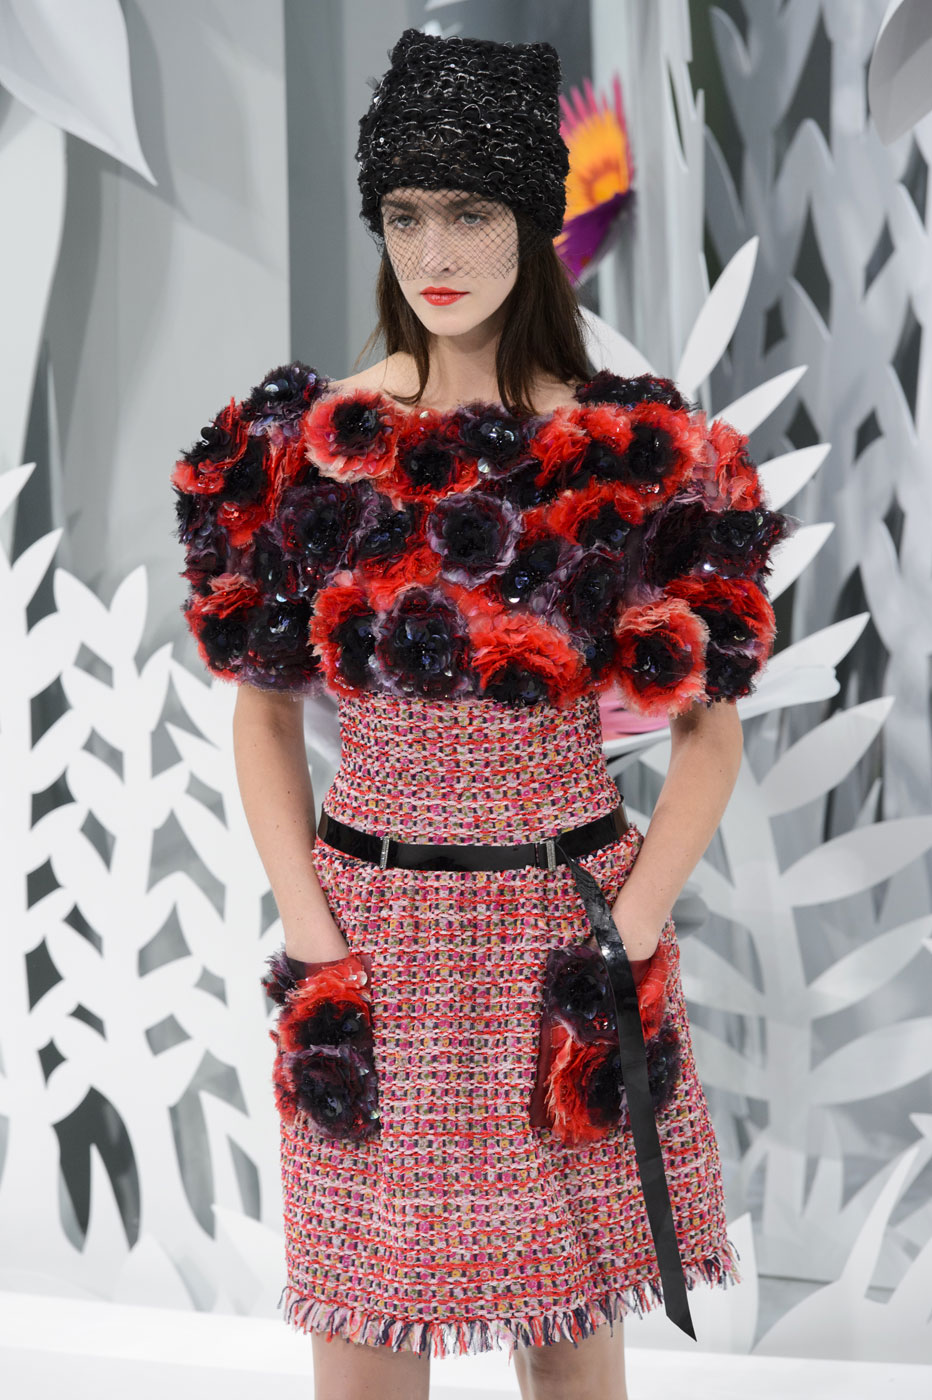 Chanel-fashion-runway-show-haute-couture-paris-spring-summer-2015-the-impression-087